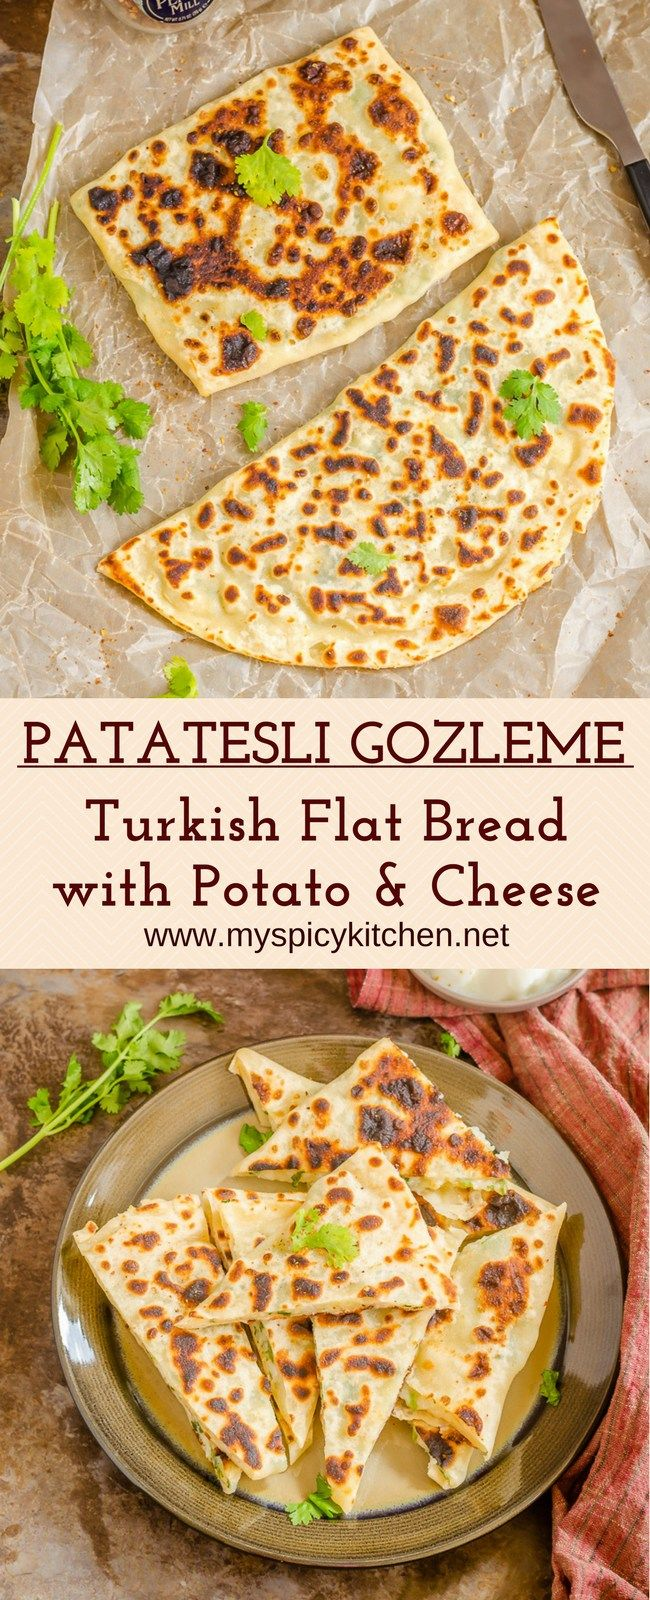 Patasteli gozleme is potato cheese stuffed flatbread from Turkey.  It is a popular street food, makes a great snack, breakfast and a light meal. Make a gozleme wrap using salad as a filling.   #StuffedFlatBread #TurkishFlatBread #SavoryStuffedFlatBread #StreetFood